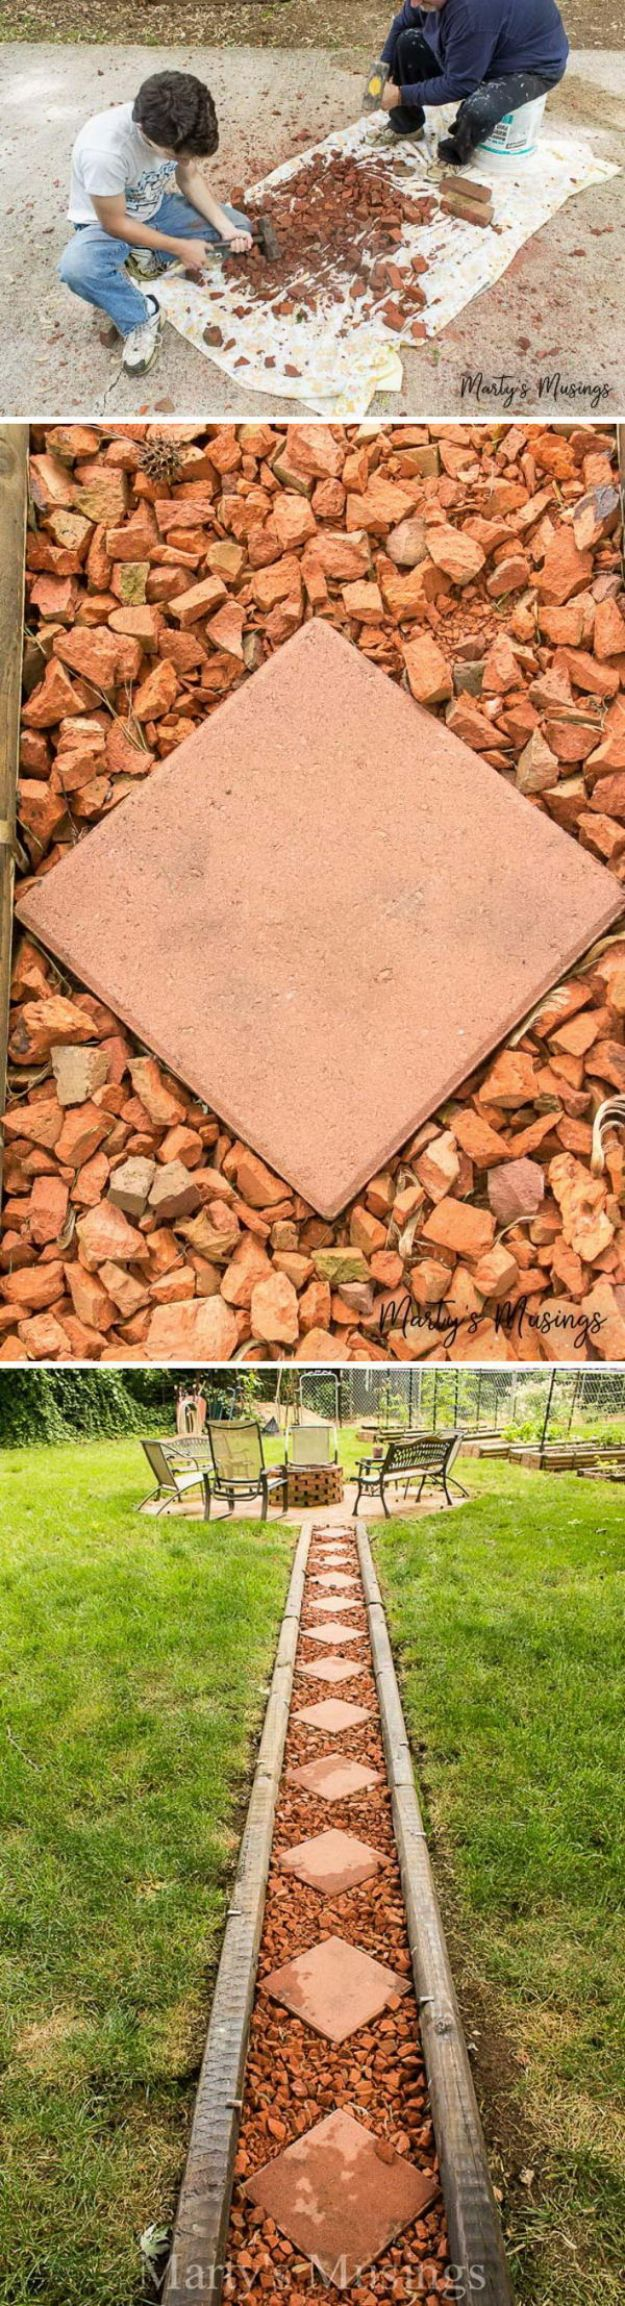 DIY Walkways - Make Your Own Brick Pathway For Under $50 - Do It Yourself Walkway Ideas for Paths to The Front Door and Backyard - Cheap and Easy Pavers and Concrete Path and Stepping Stones - Wood and Edging, Lights, Backyard and Patio Walks With Gravel, Sand, Dirt and Brick http://diyjoy.com/diy-walkways